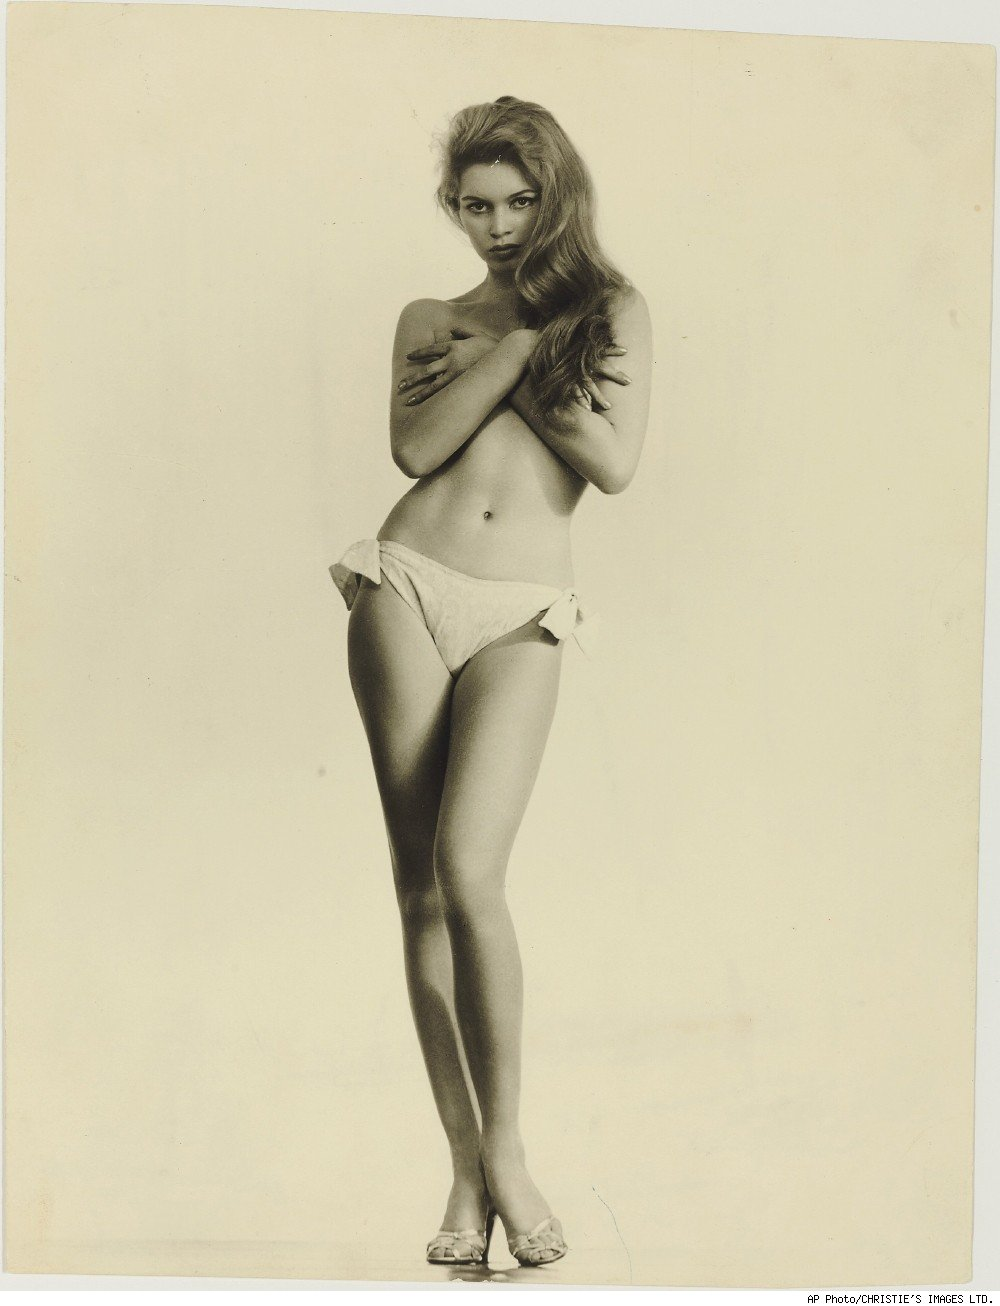 A a photograph of Brigette Bardot that appeared on the March 1958 cover of Playboy magazine